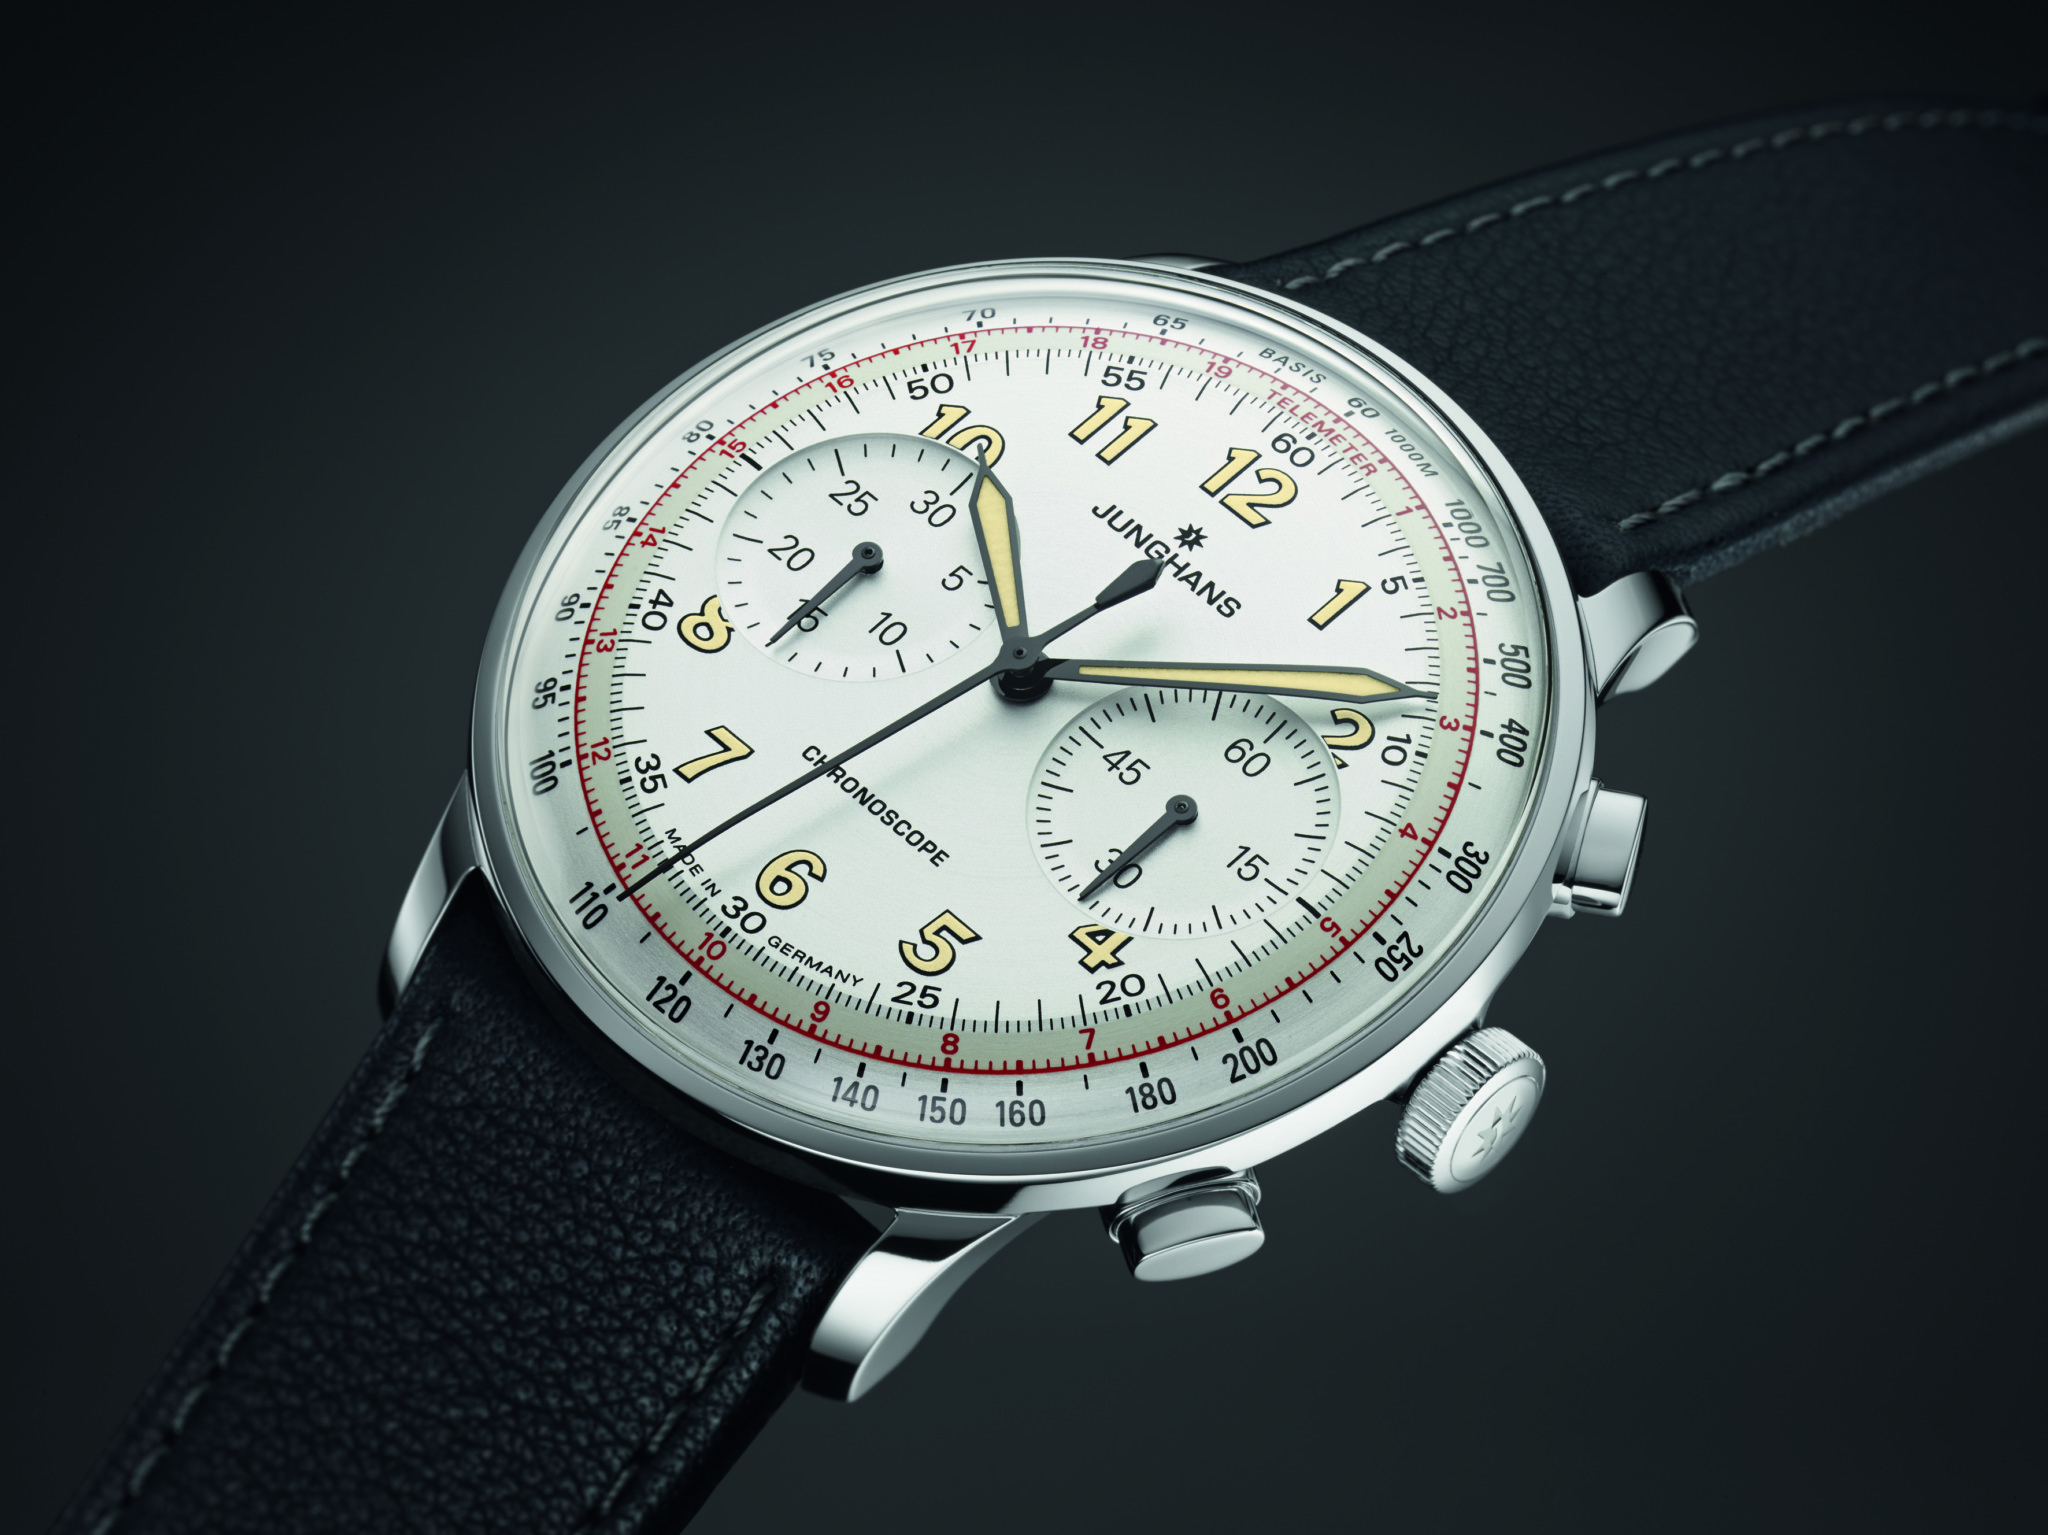 Junghans Meister Telemeter — With an engraved tachymeter scale on the bezel, the Telemeter is Junghans' signature sporty looking collection.